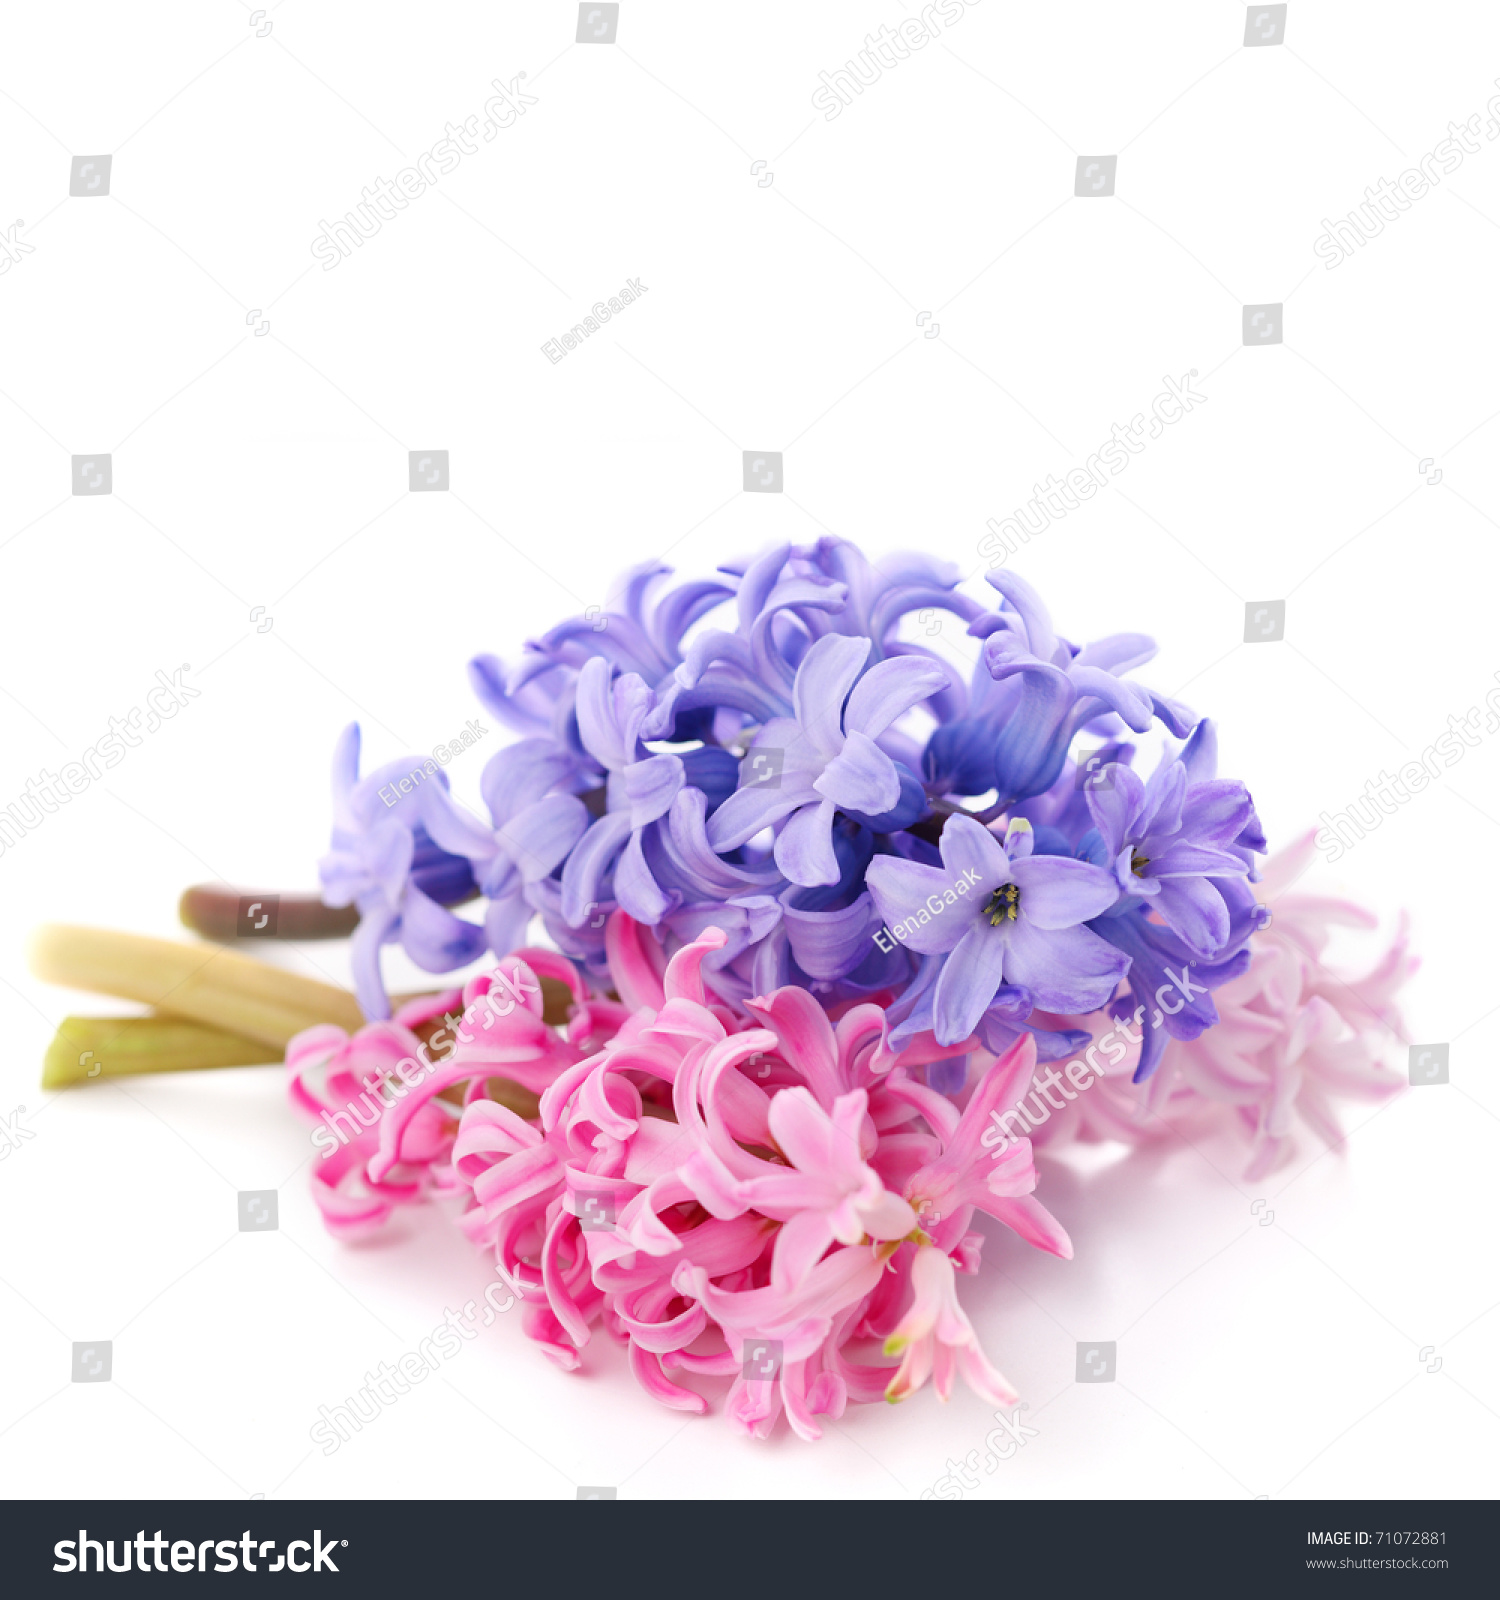 Bouquet violet hyacinth isolated on white background stock photo save to a lightbox dhlflorist Choice Image